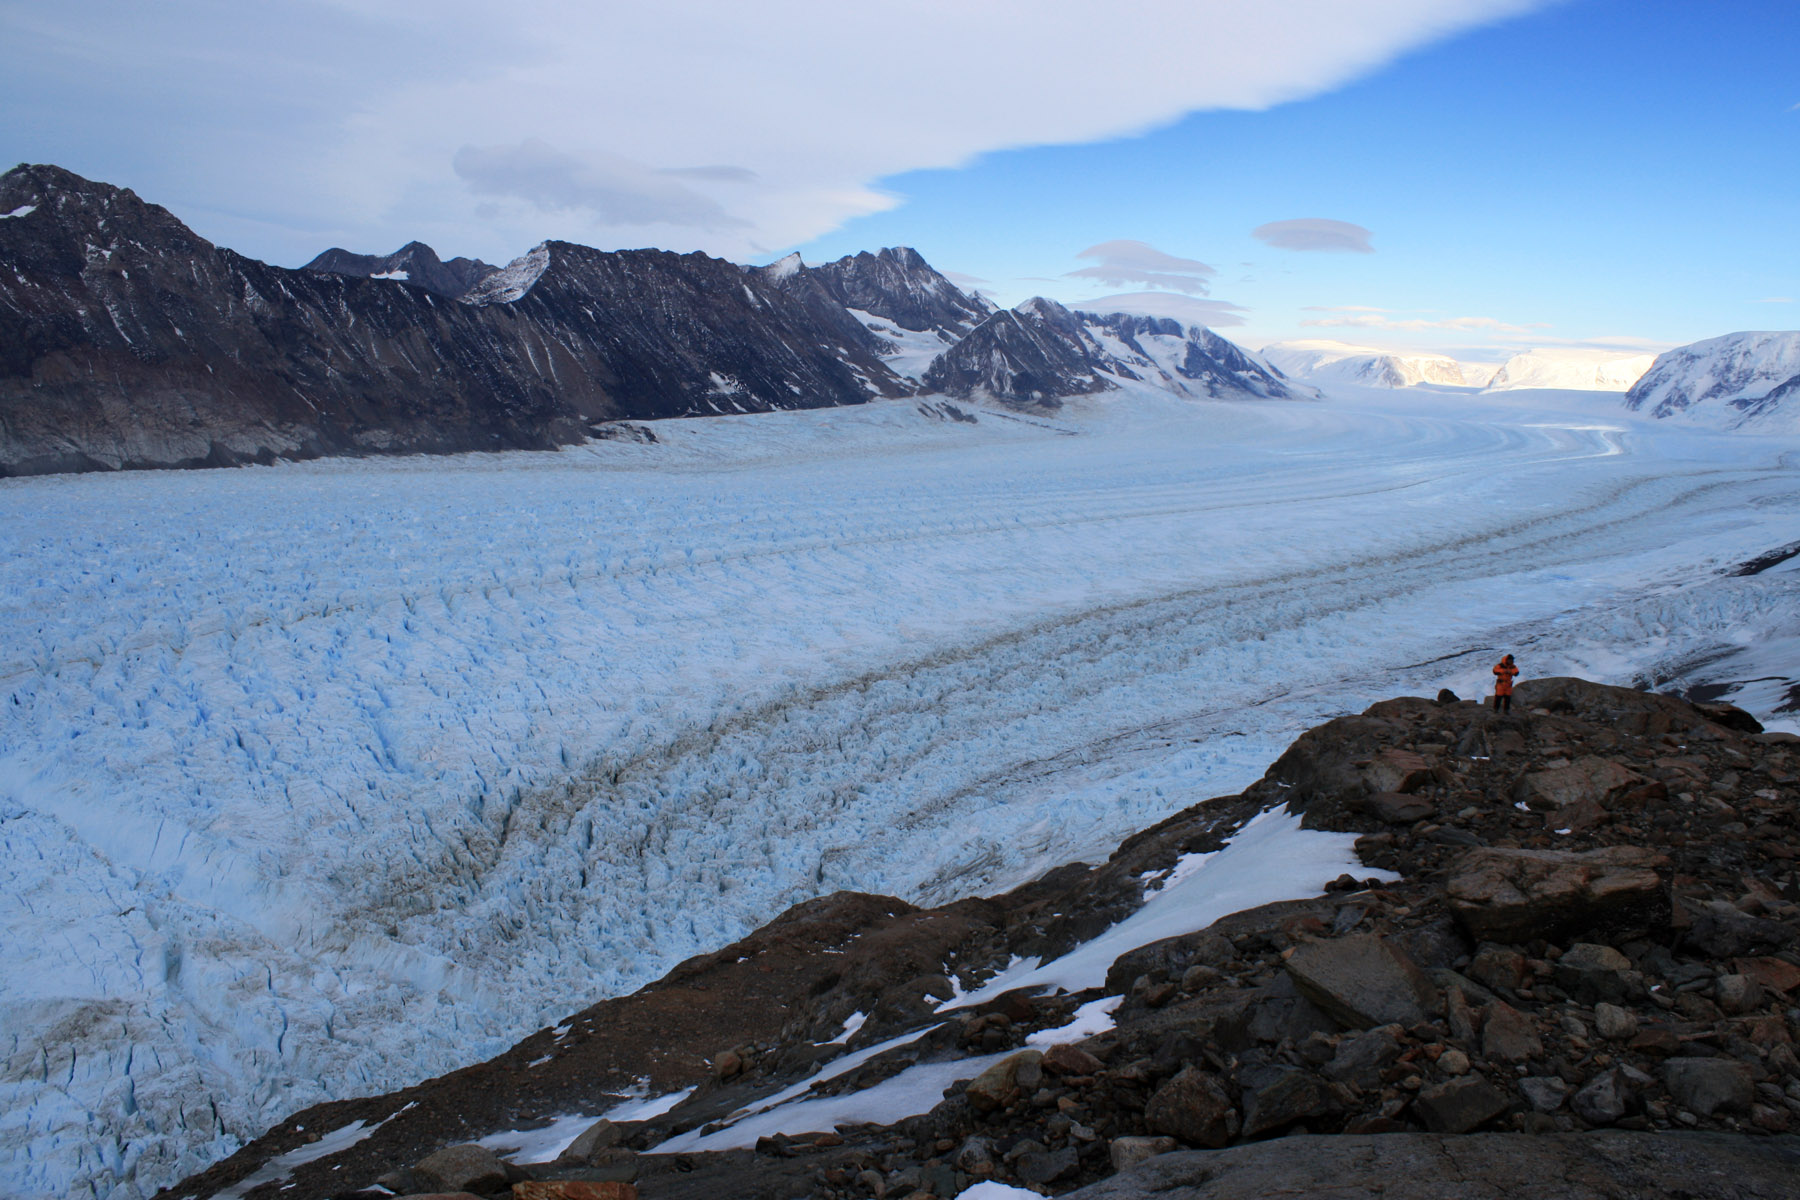 The calving front of Crane Glacier in Antarctica